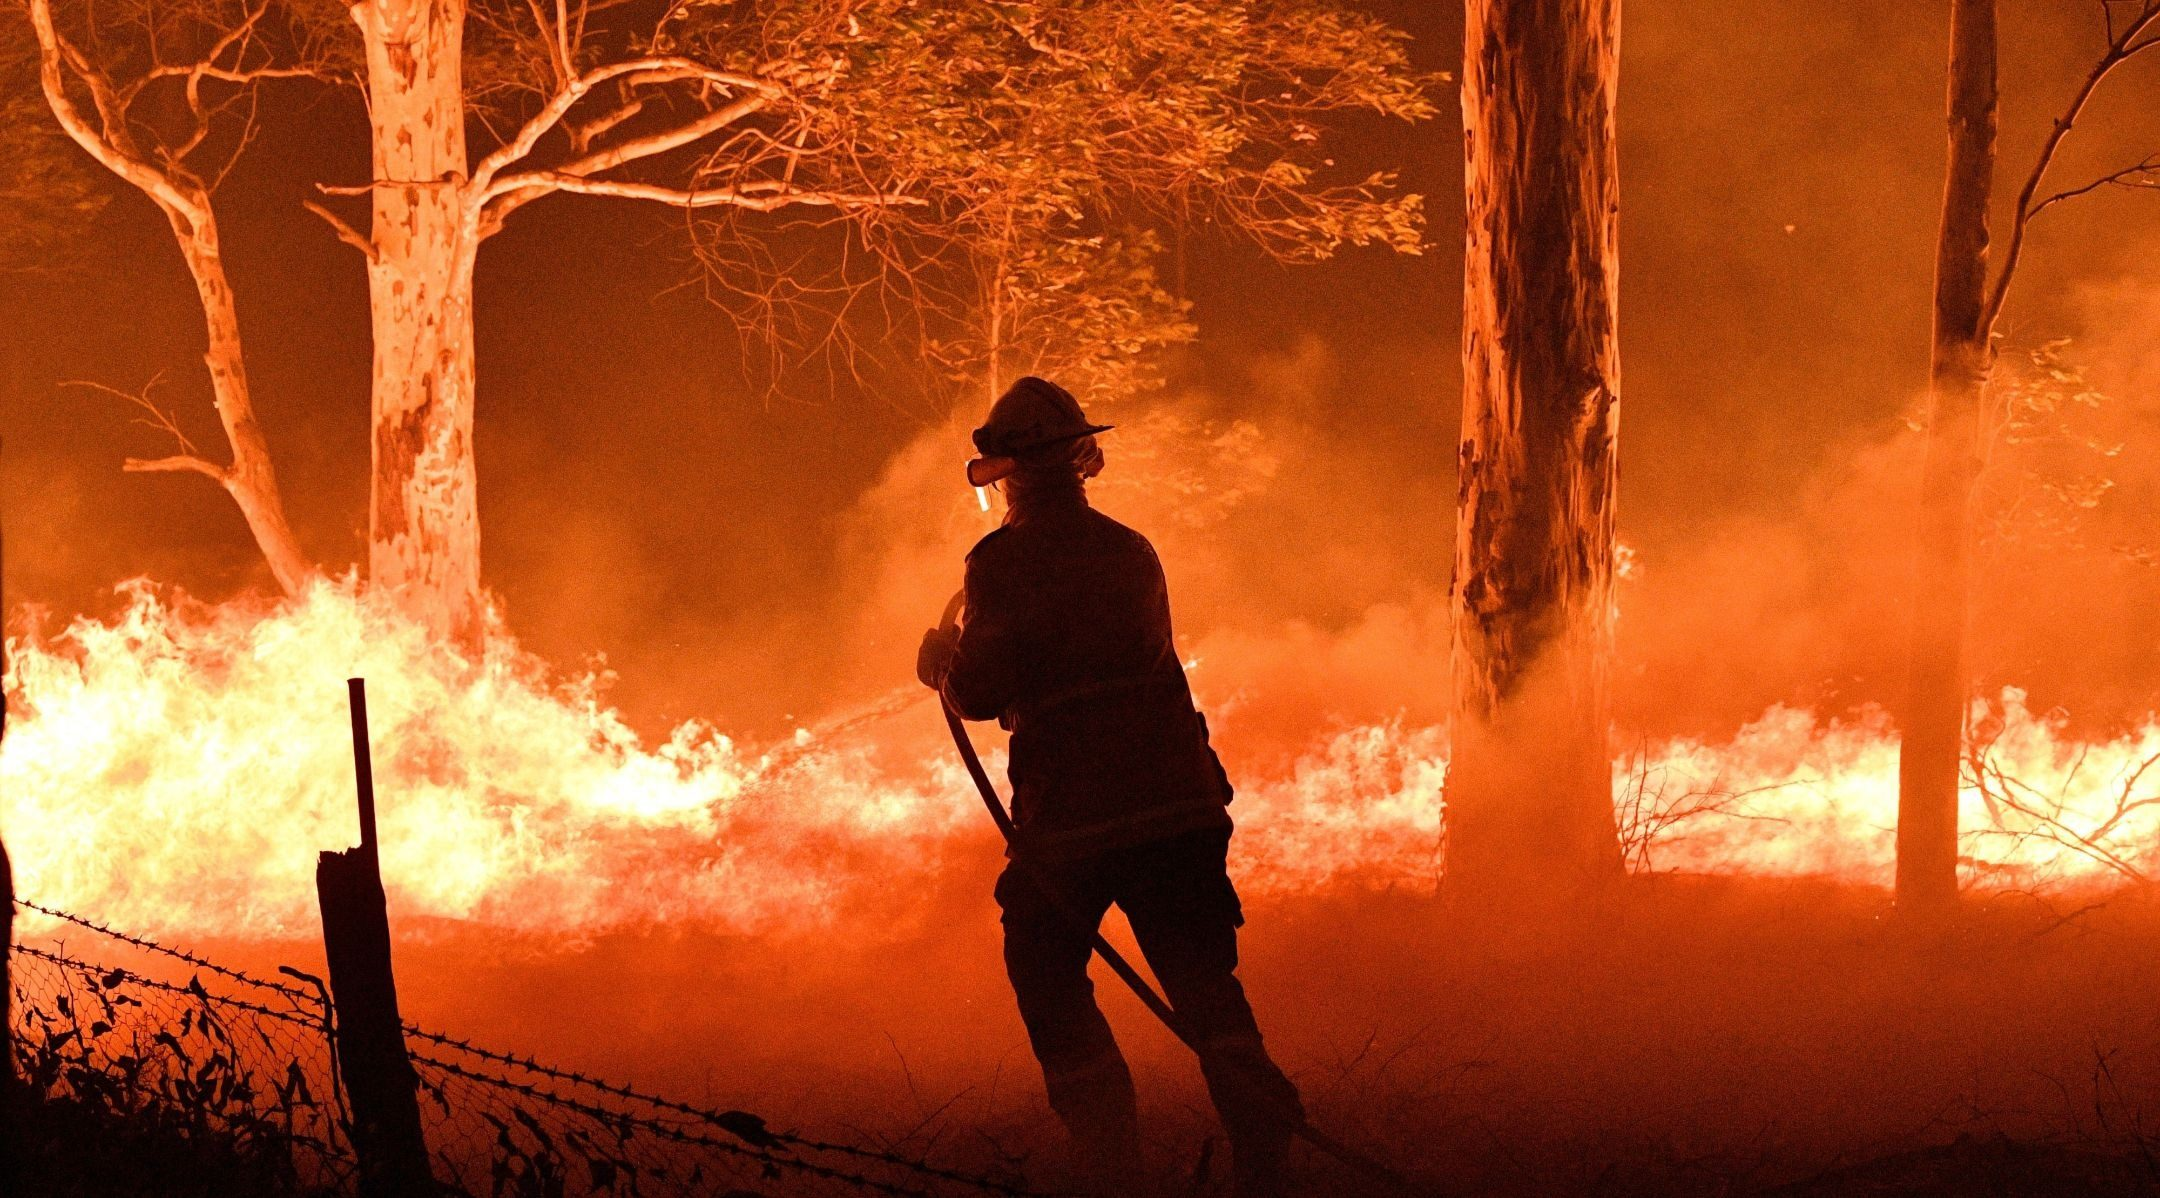 A firefighter in Australia hoses down trees to protect nearby homes from bush fires near the town of Nowra in the state of New South Wales on Dec. 31, 2019. (JTA/Saeed Kahn/AFP via Getty Images)